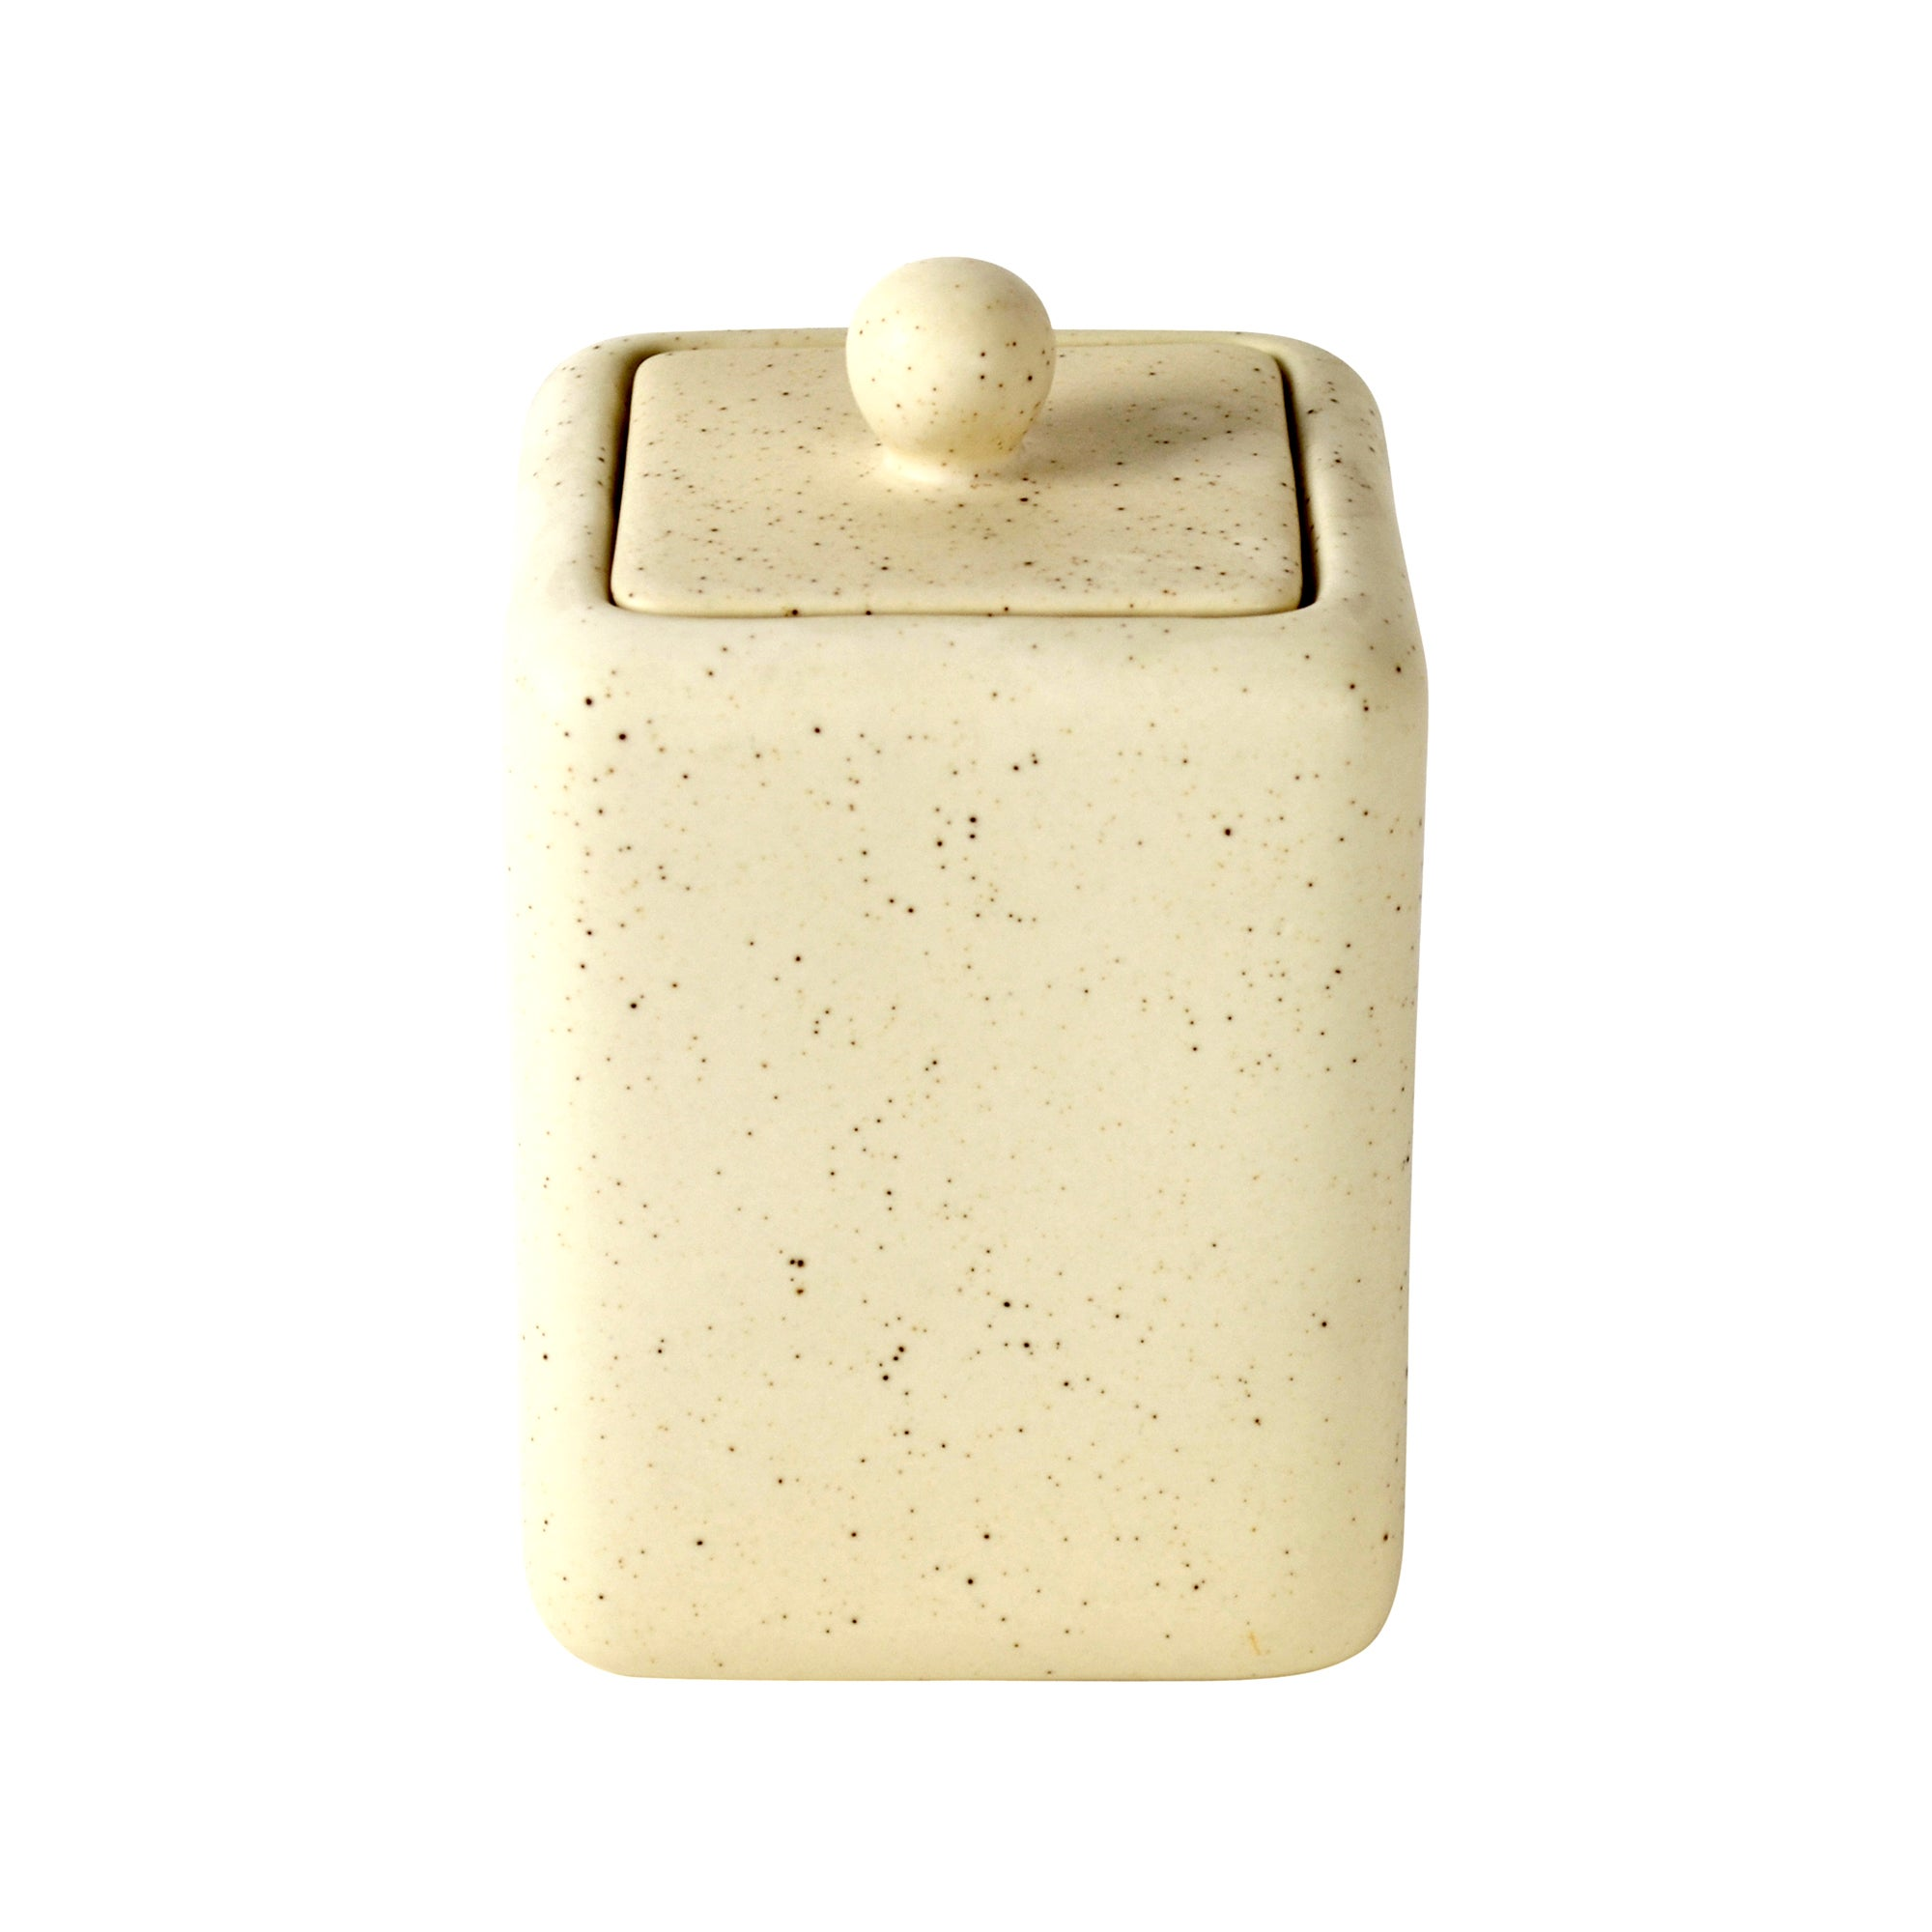 Naturals Collection Pebble Trinket Pot with Lid